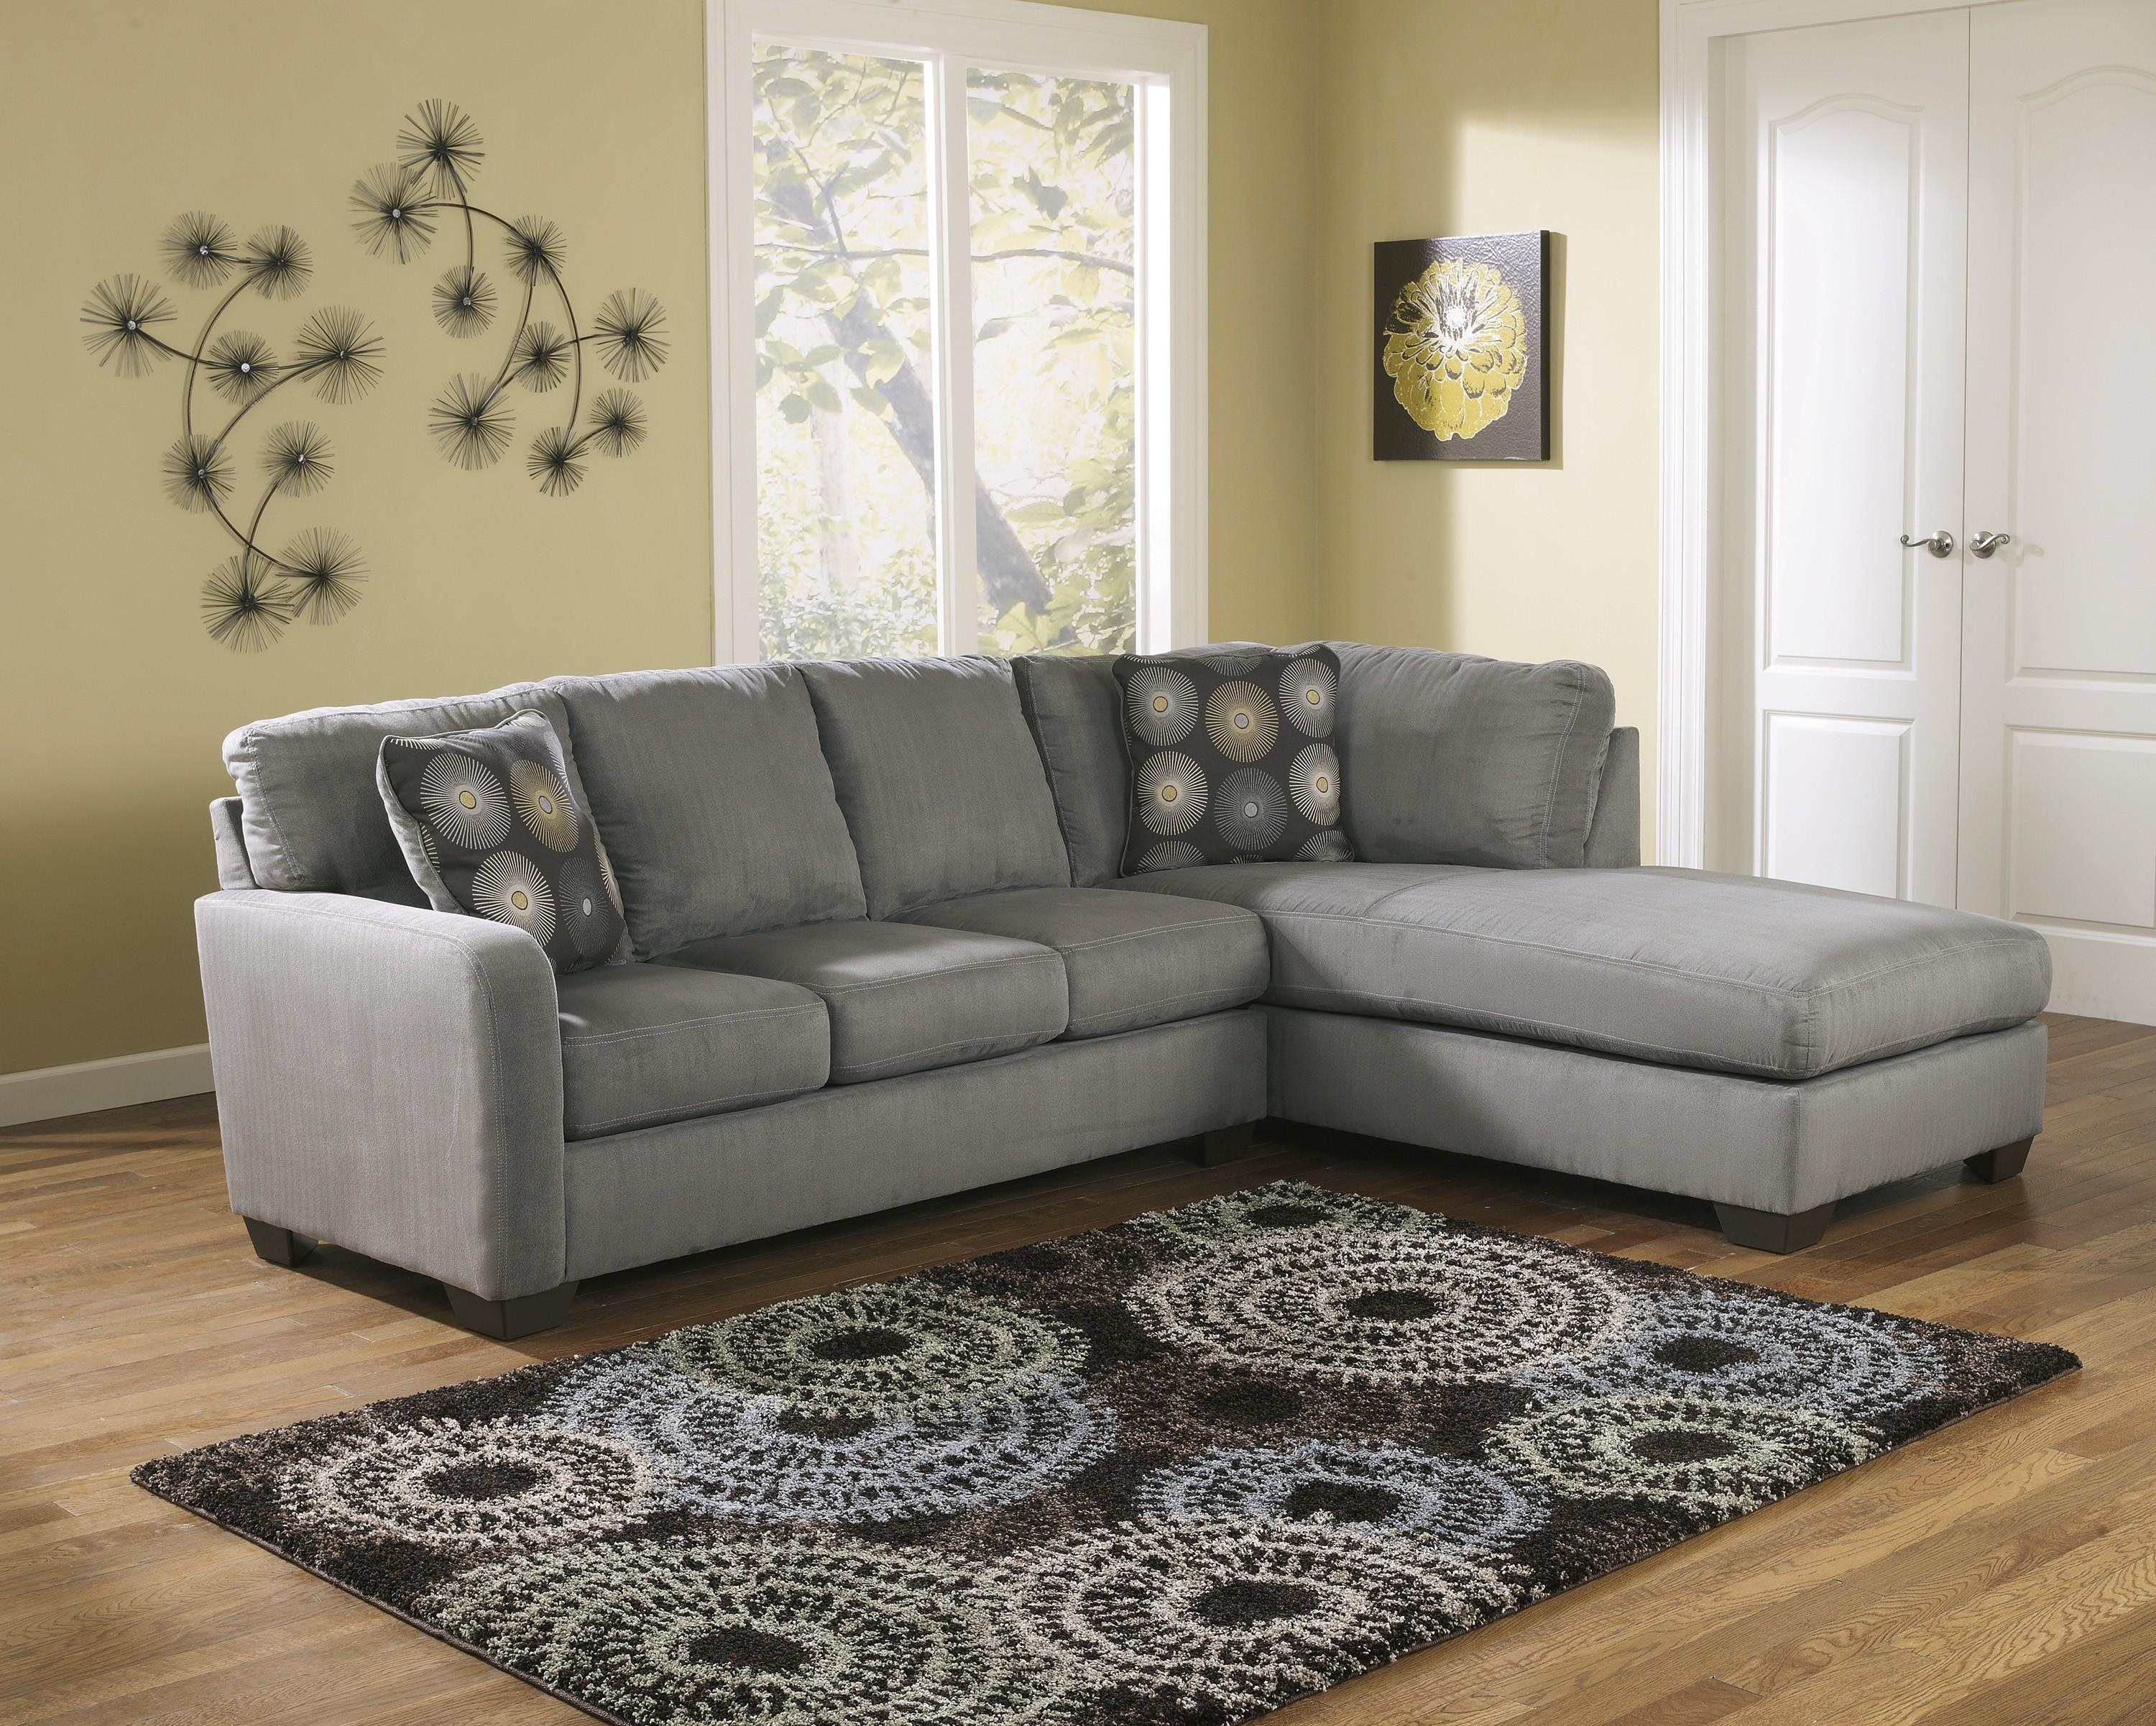 Ashley Zella Charcoal Gray Tone Fabric Sectional Sofa With Raf Chaise Within Charcoal Grey Sofas (Image 1 of 20)